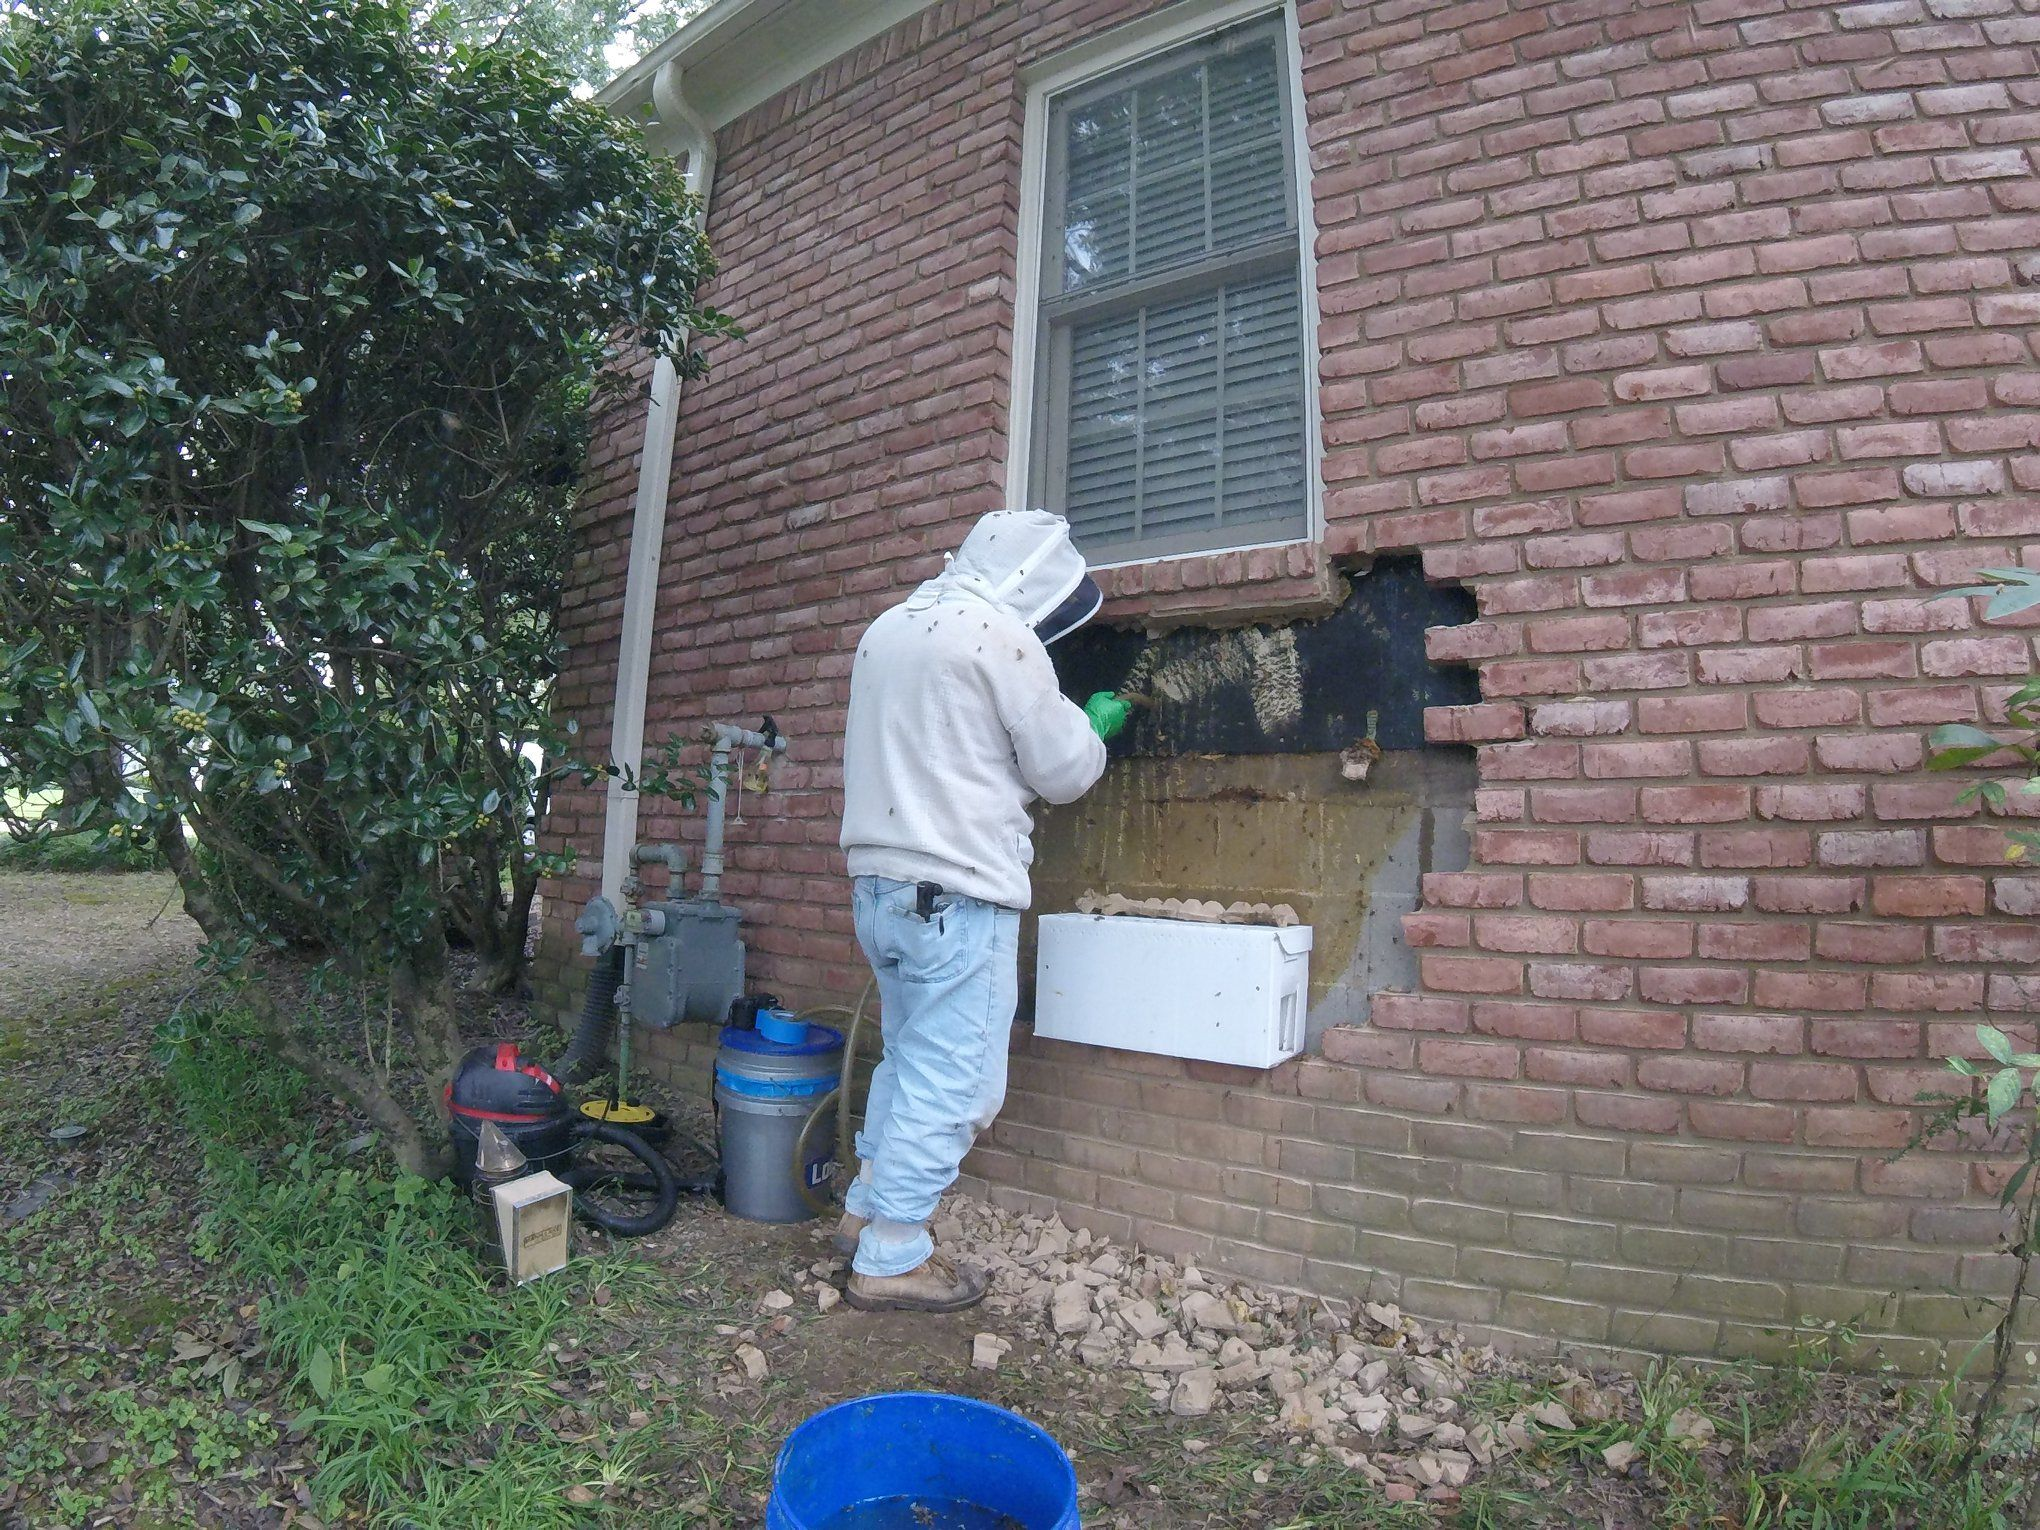 Bee keeper removing hive from wall